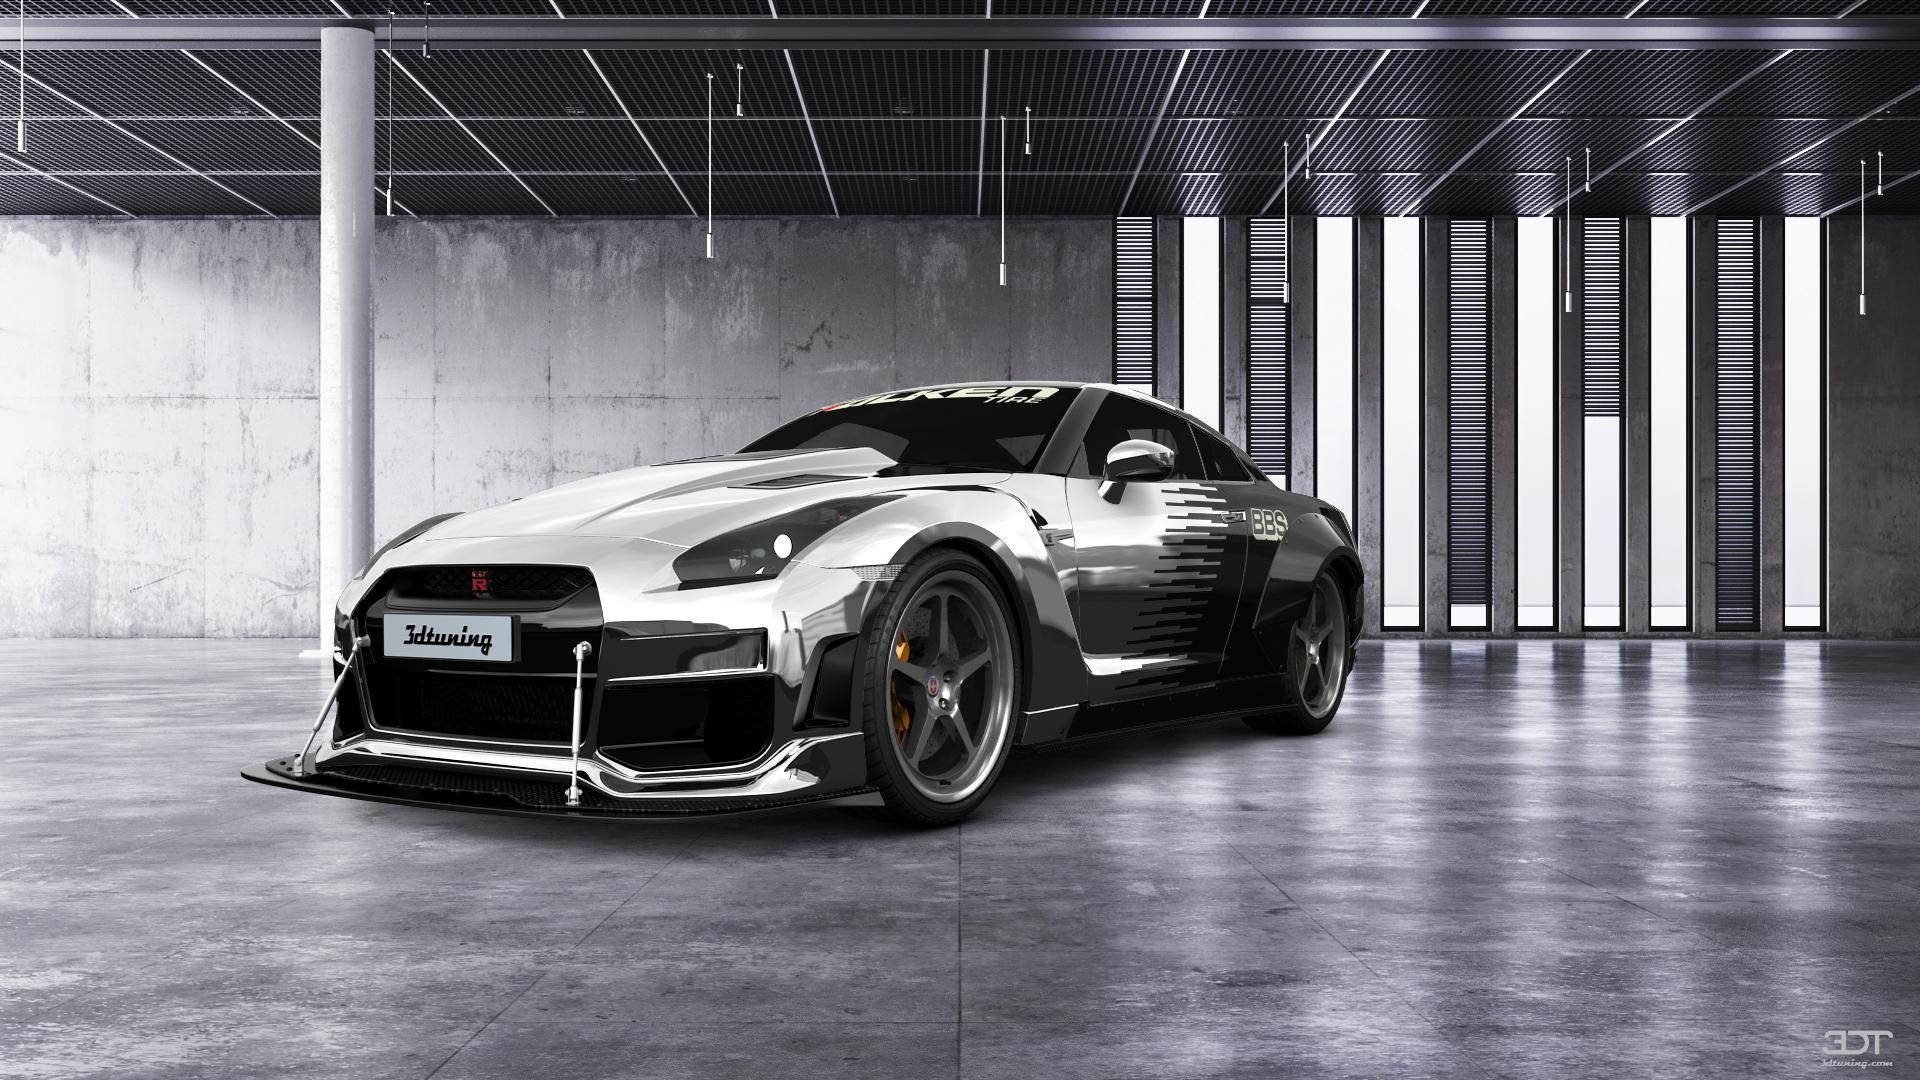 Checkout my tuning #Nissan #GT-R 2010 at 3DTuning ...